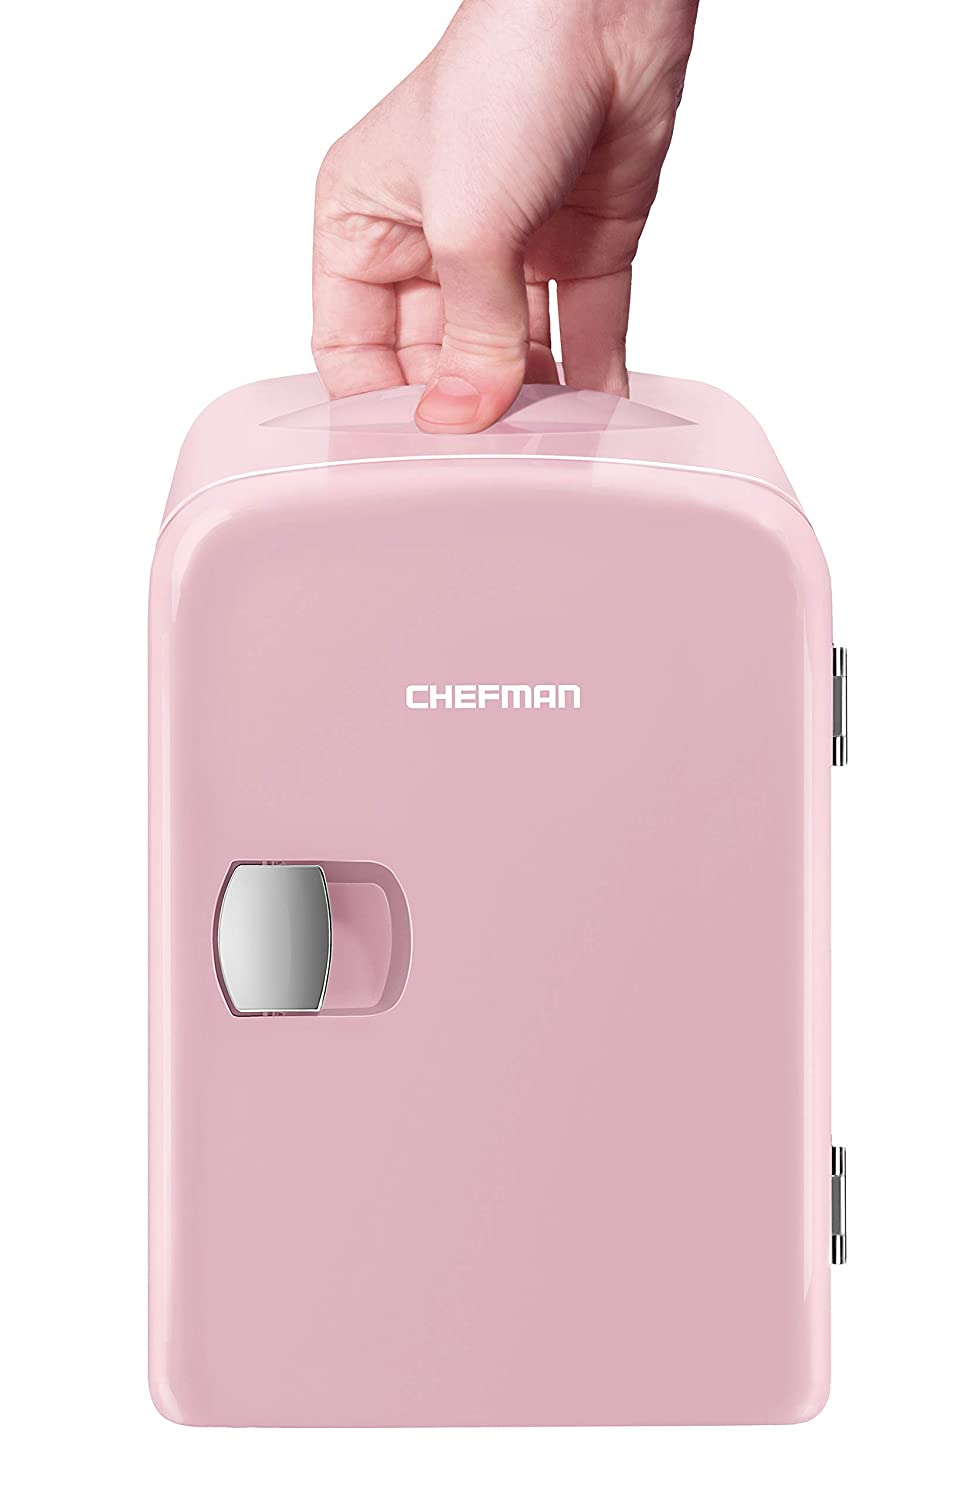 Chefman Mini Portable Compact Personal Fridge Cools Heats 4 Liter Capacity, Chills 6 12oz cans, 100 Freon-Free Eco Friendly, Includes Plugs for Home Outlet 12V Car Charger, Pink Renewed